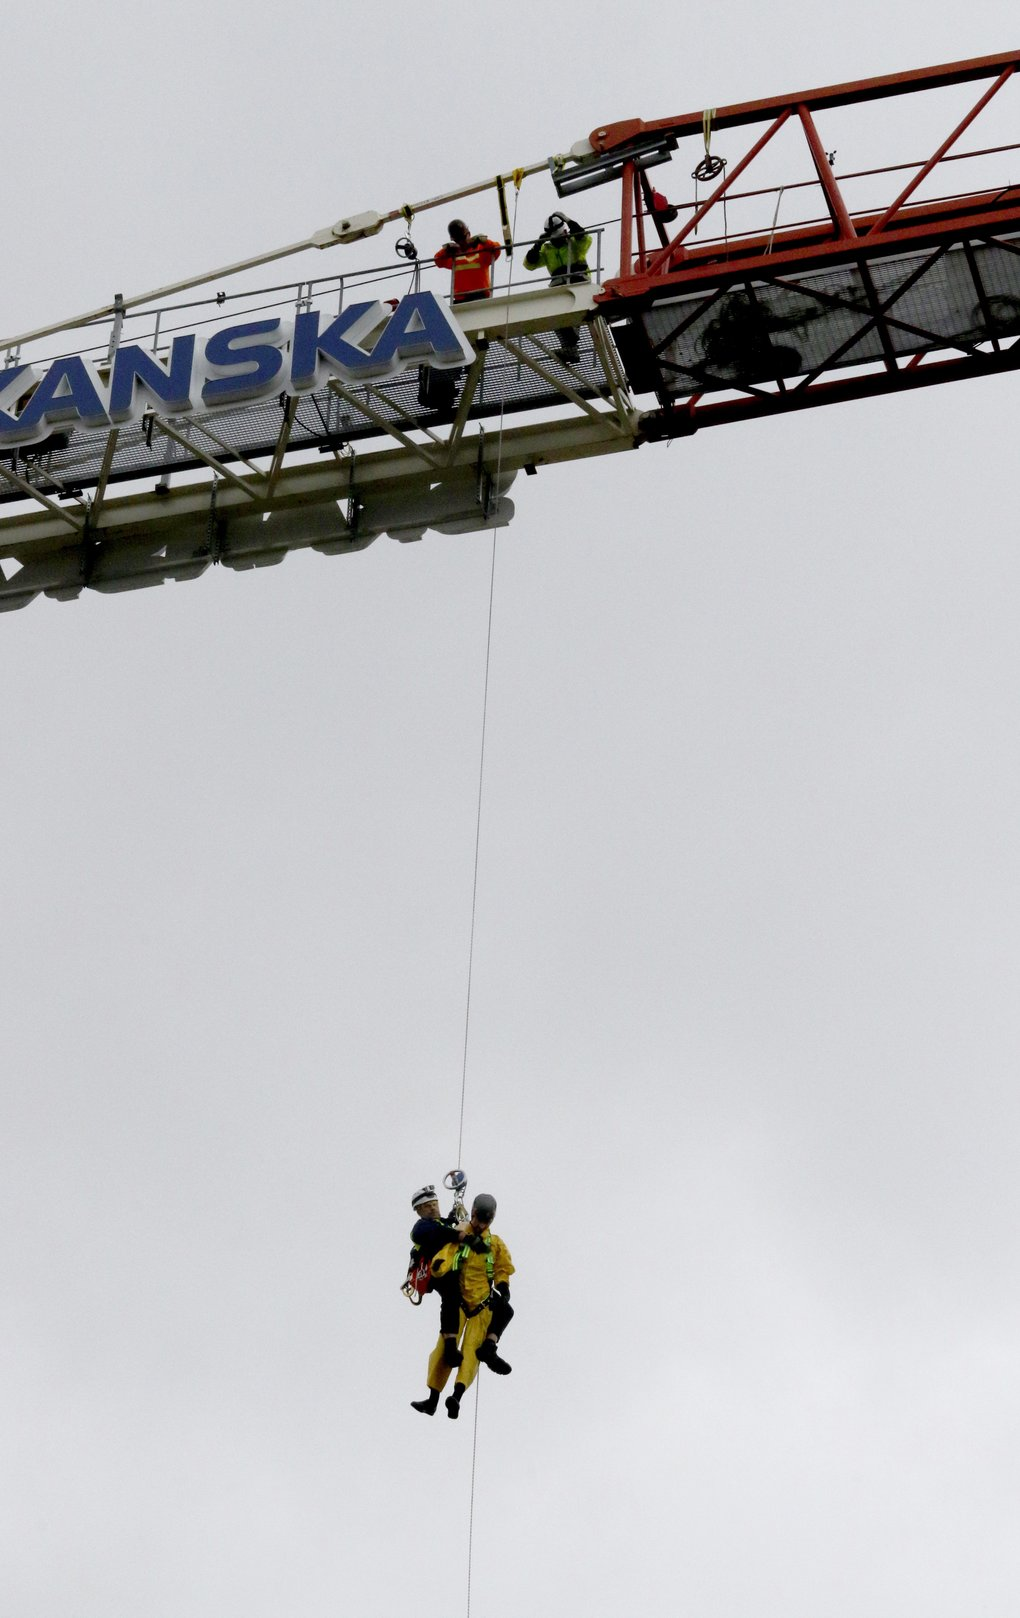 Douglas Boehm, with Guardian Fall Protection, carries out a sky-high rescue with a dummy at the Skanska construction site for the new Burke Museum.  (Alan Berner/The Seattle Times)